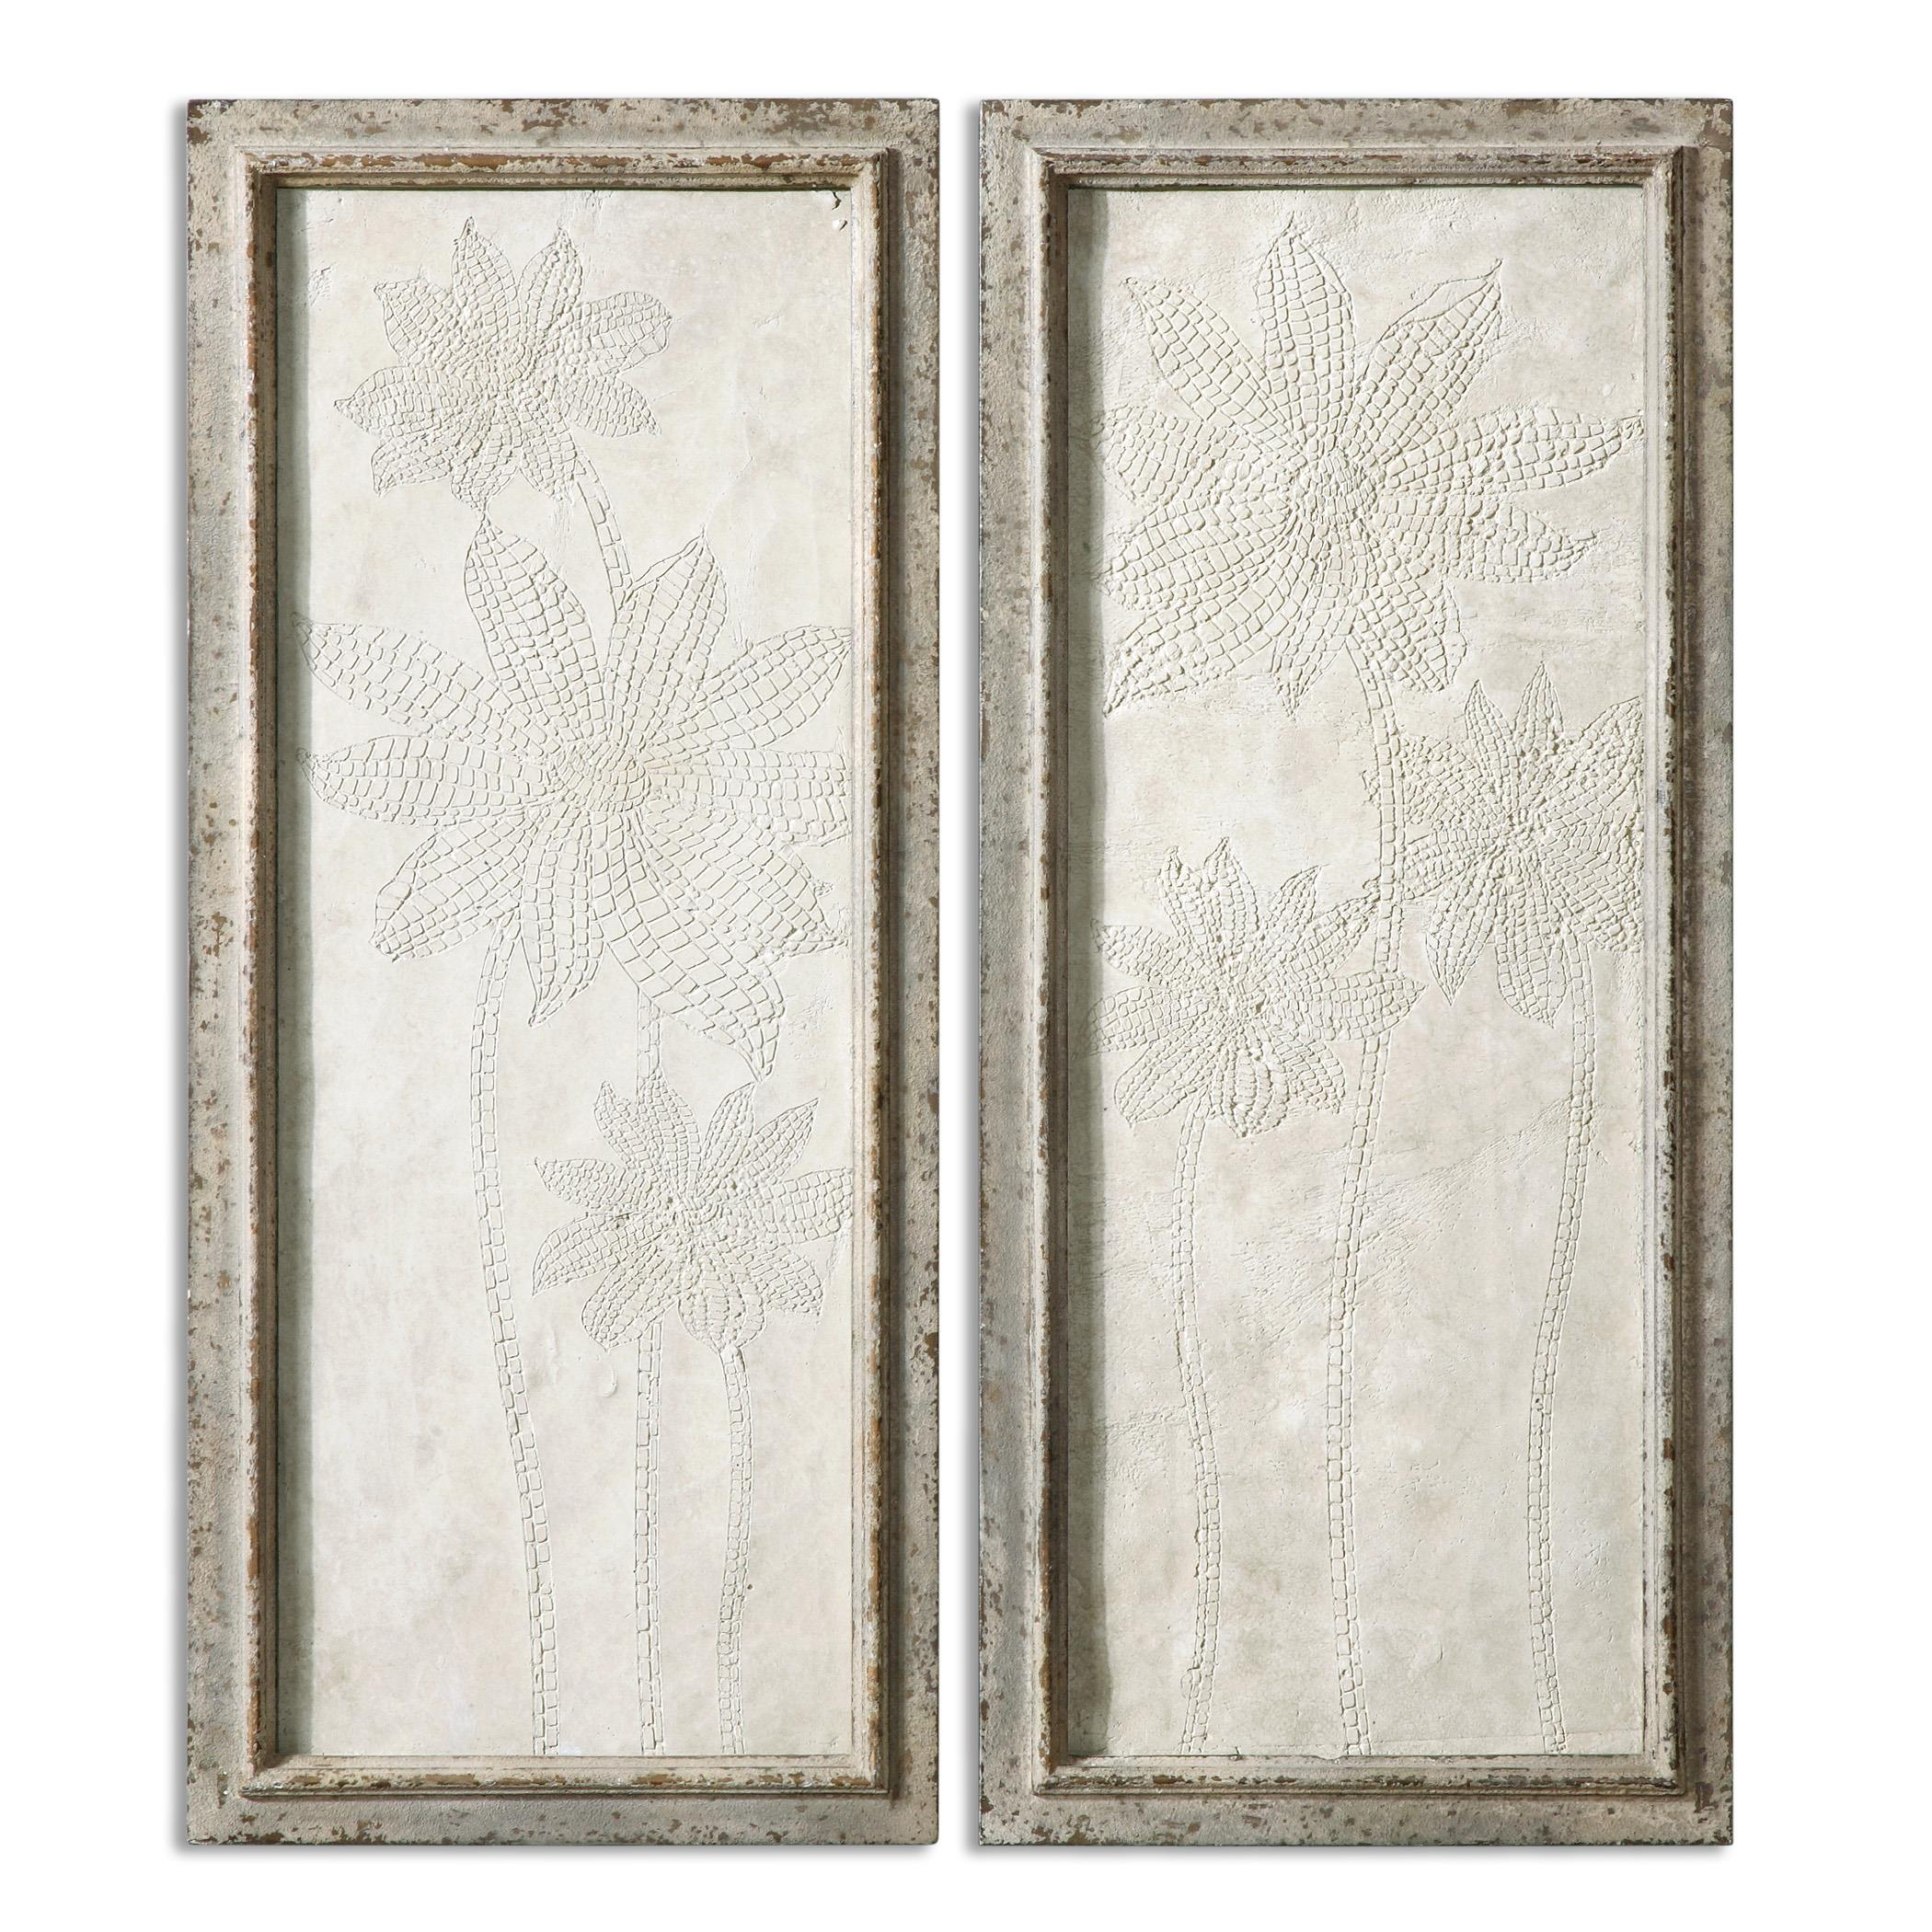 Uttermost Alternative Wall Decor Fiore Panels Wall Art S/2 - Item Number: 13911